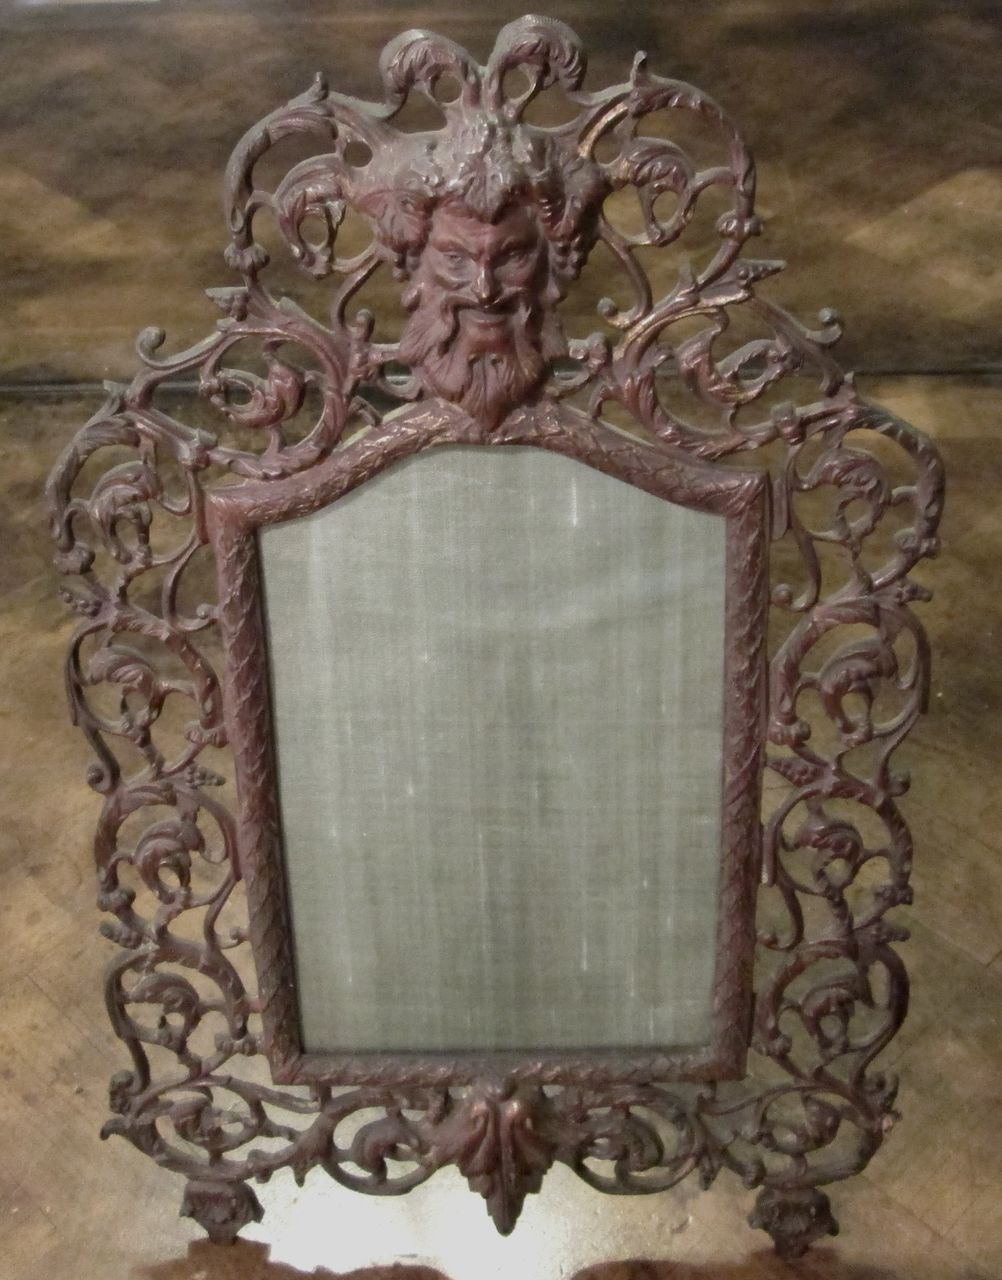 Antique Bronze Picture Frame By E. Blaesius, Circa 1900